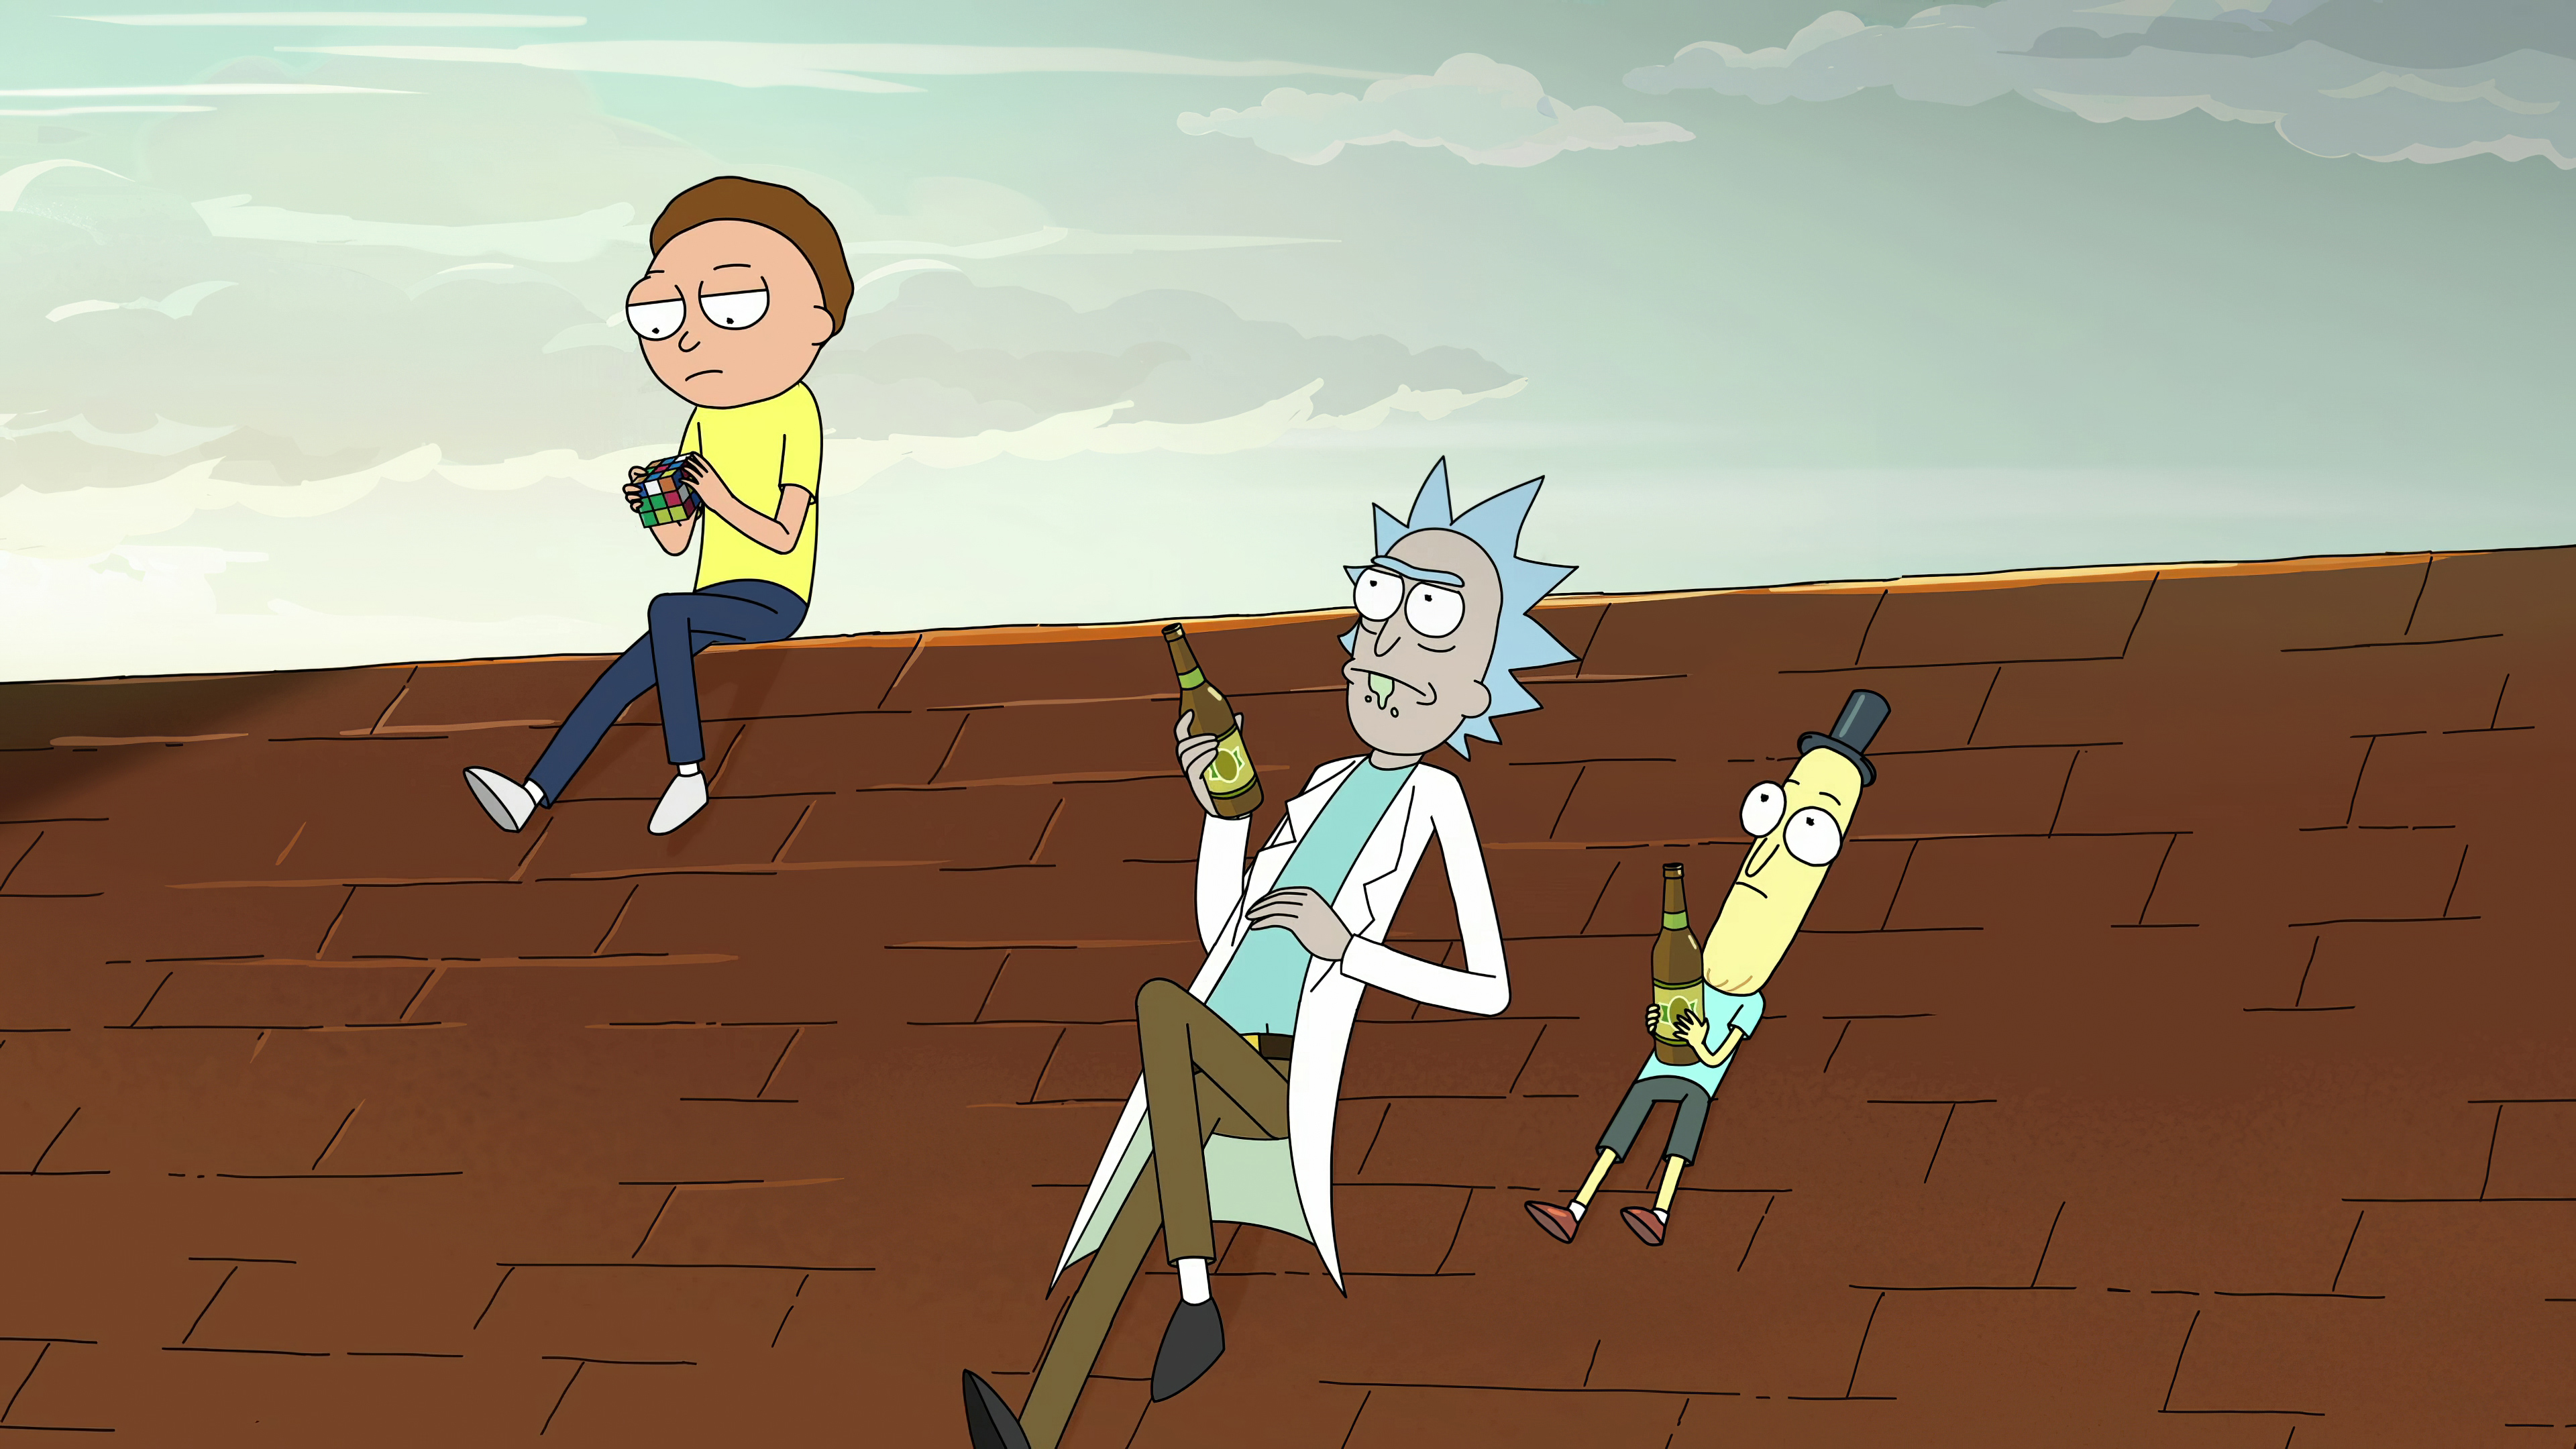 1366x768 Rick Morty And Mr Poopybutthole 4k 1366x768 Resolution Hd 4k Wallpapers Images Backgrounds Photos And Pictures